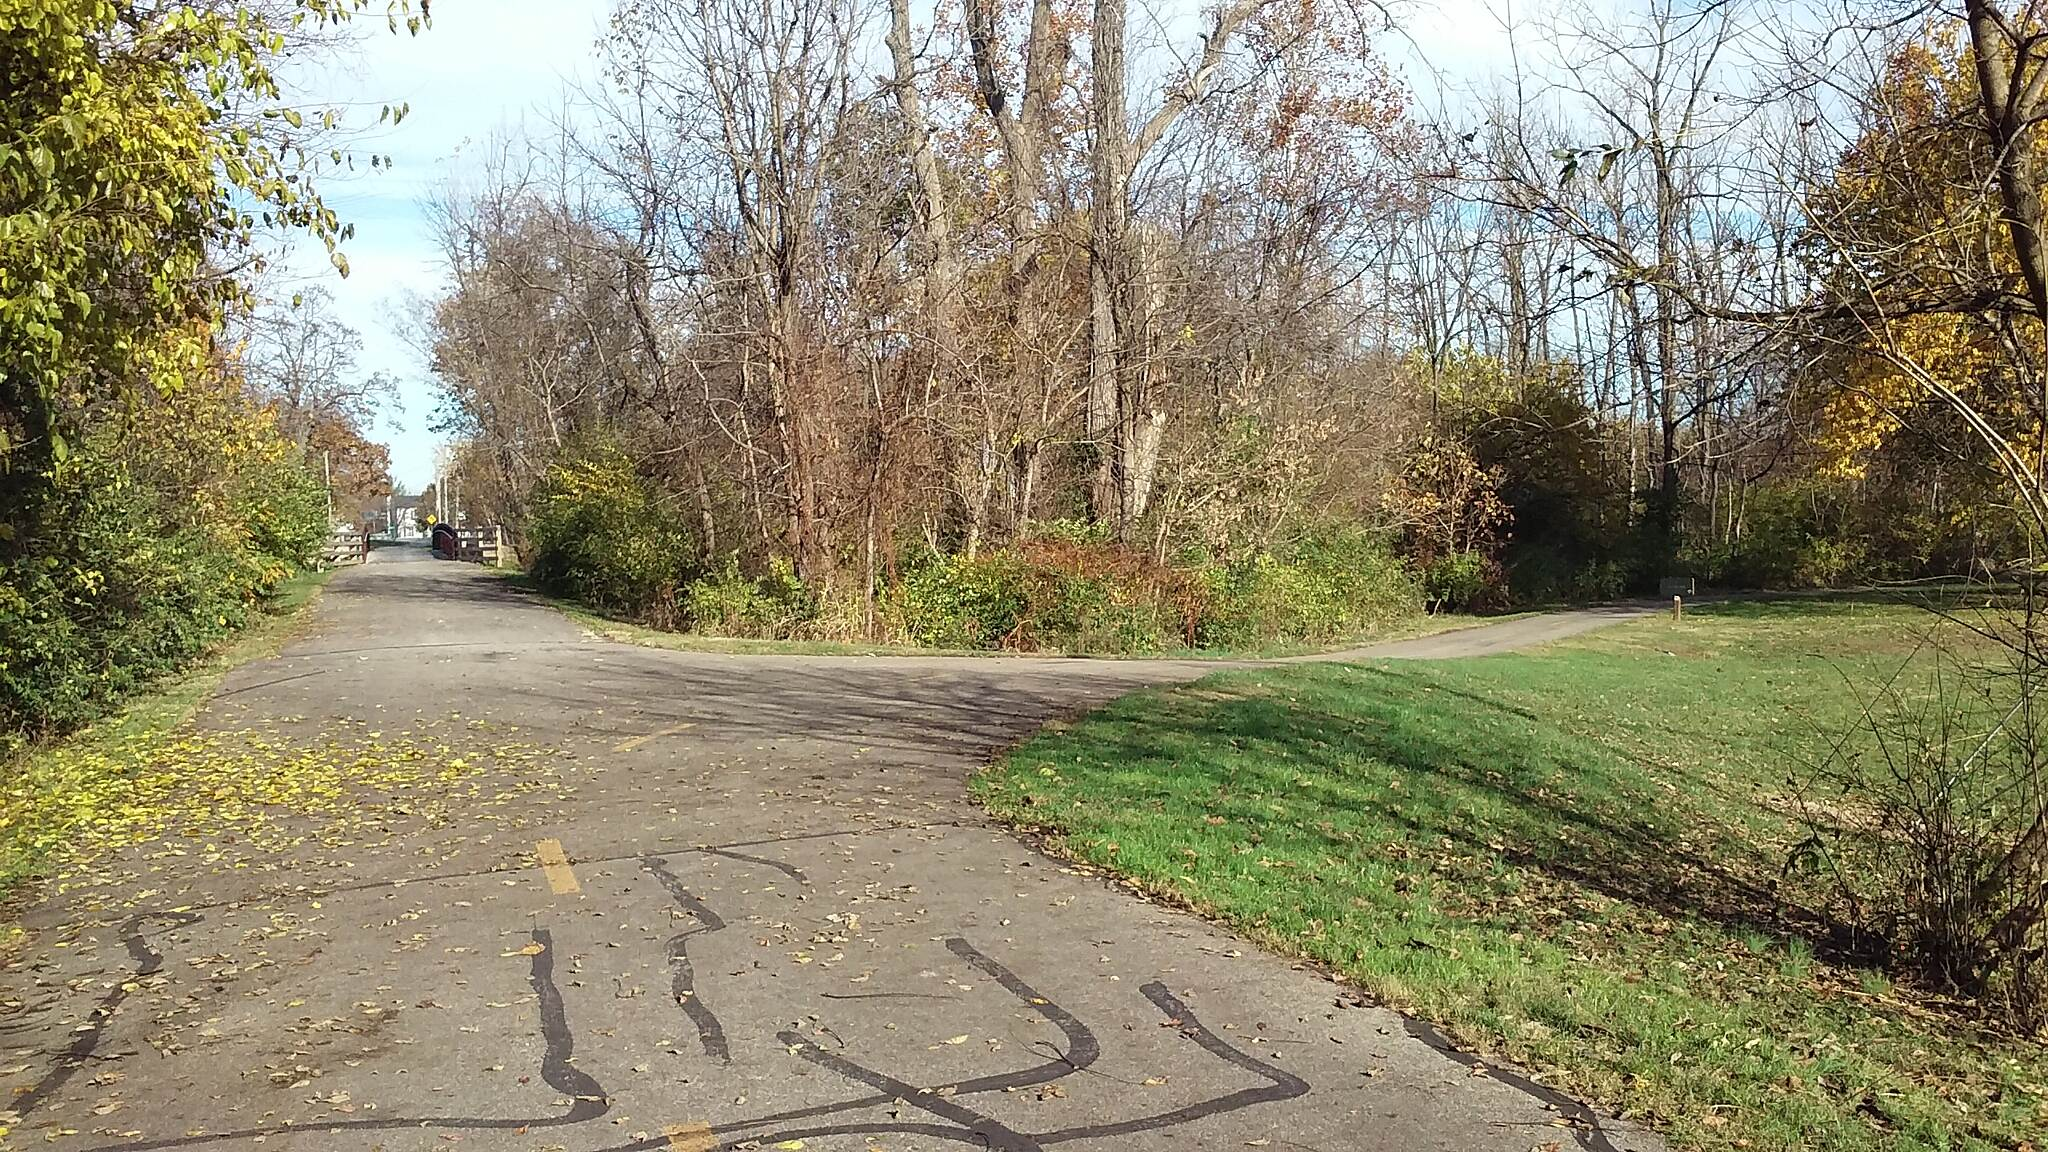 Blacklick Creek Greenway Trail Nov 2015 Northbound, right to unpaved section